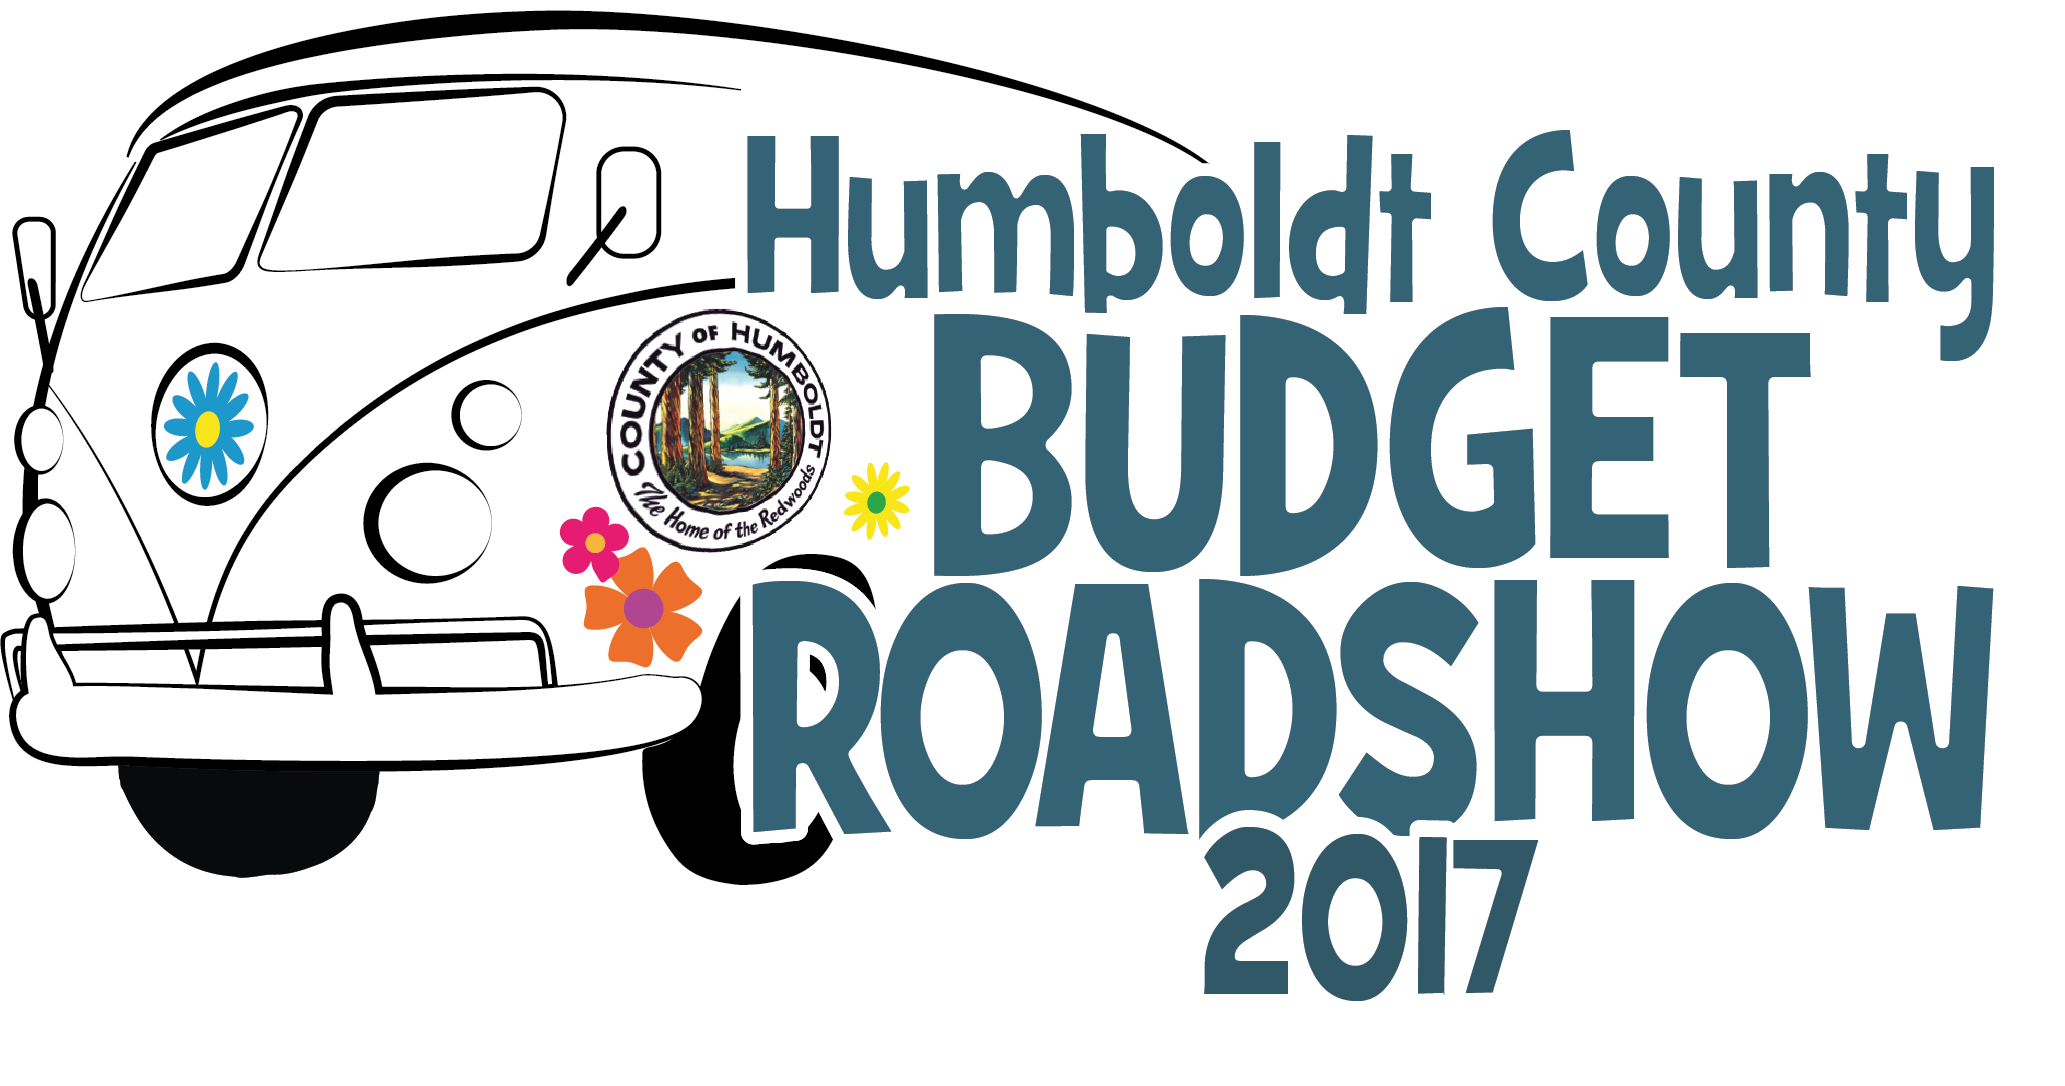 Van with text reading Humboldt County Budget Roadshow 2017